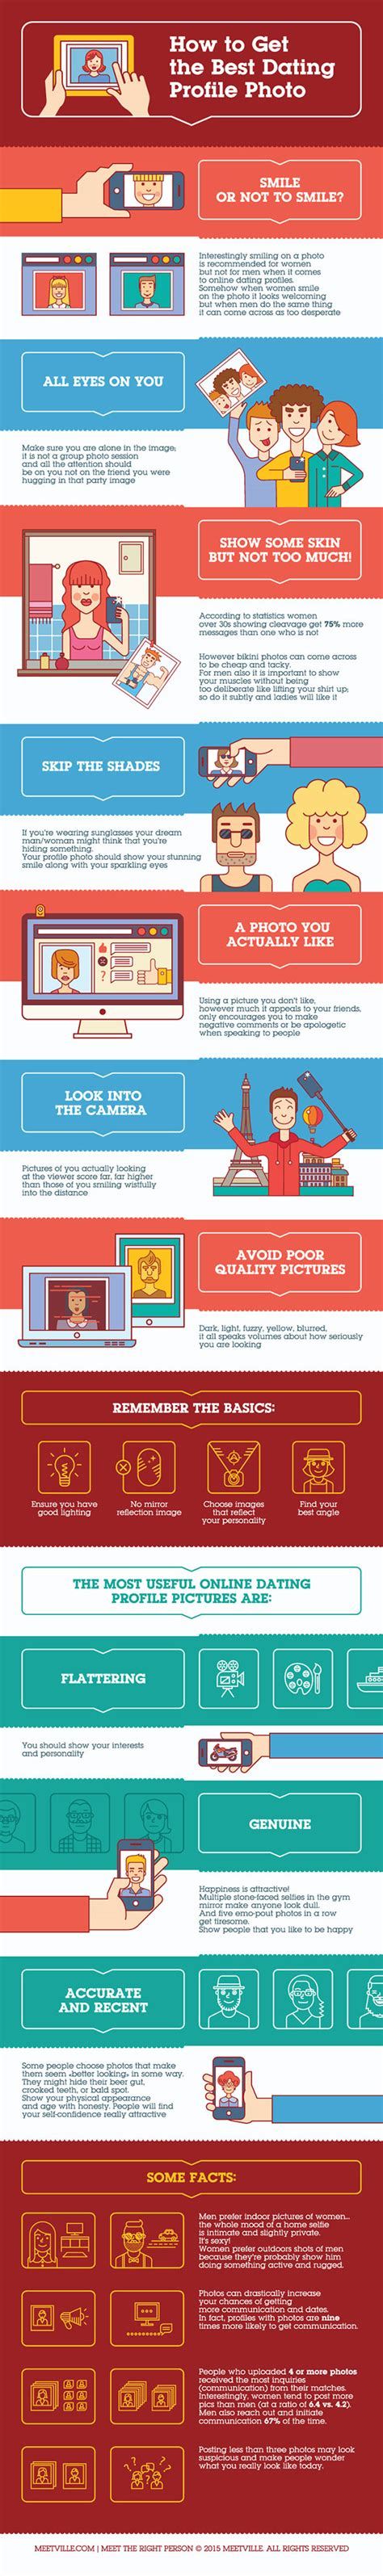 dateing profile 2017 how to get the best dating profile photo infographic